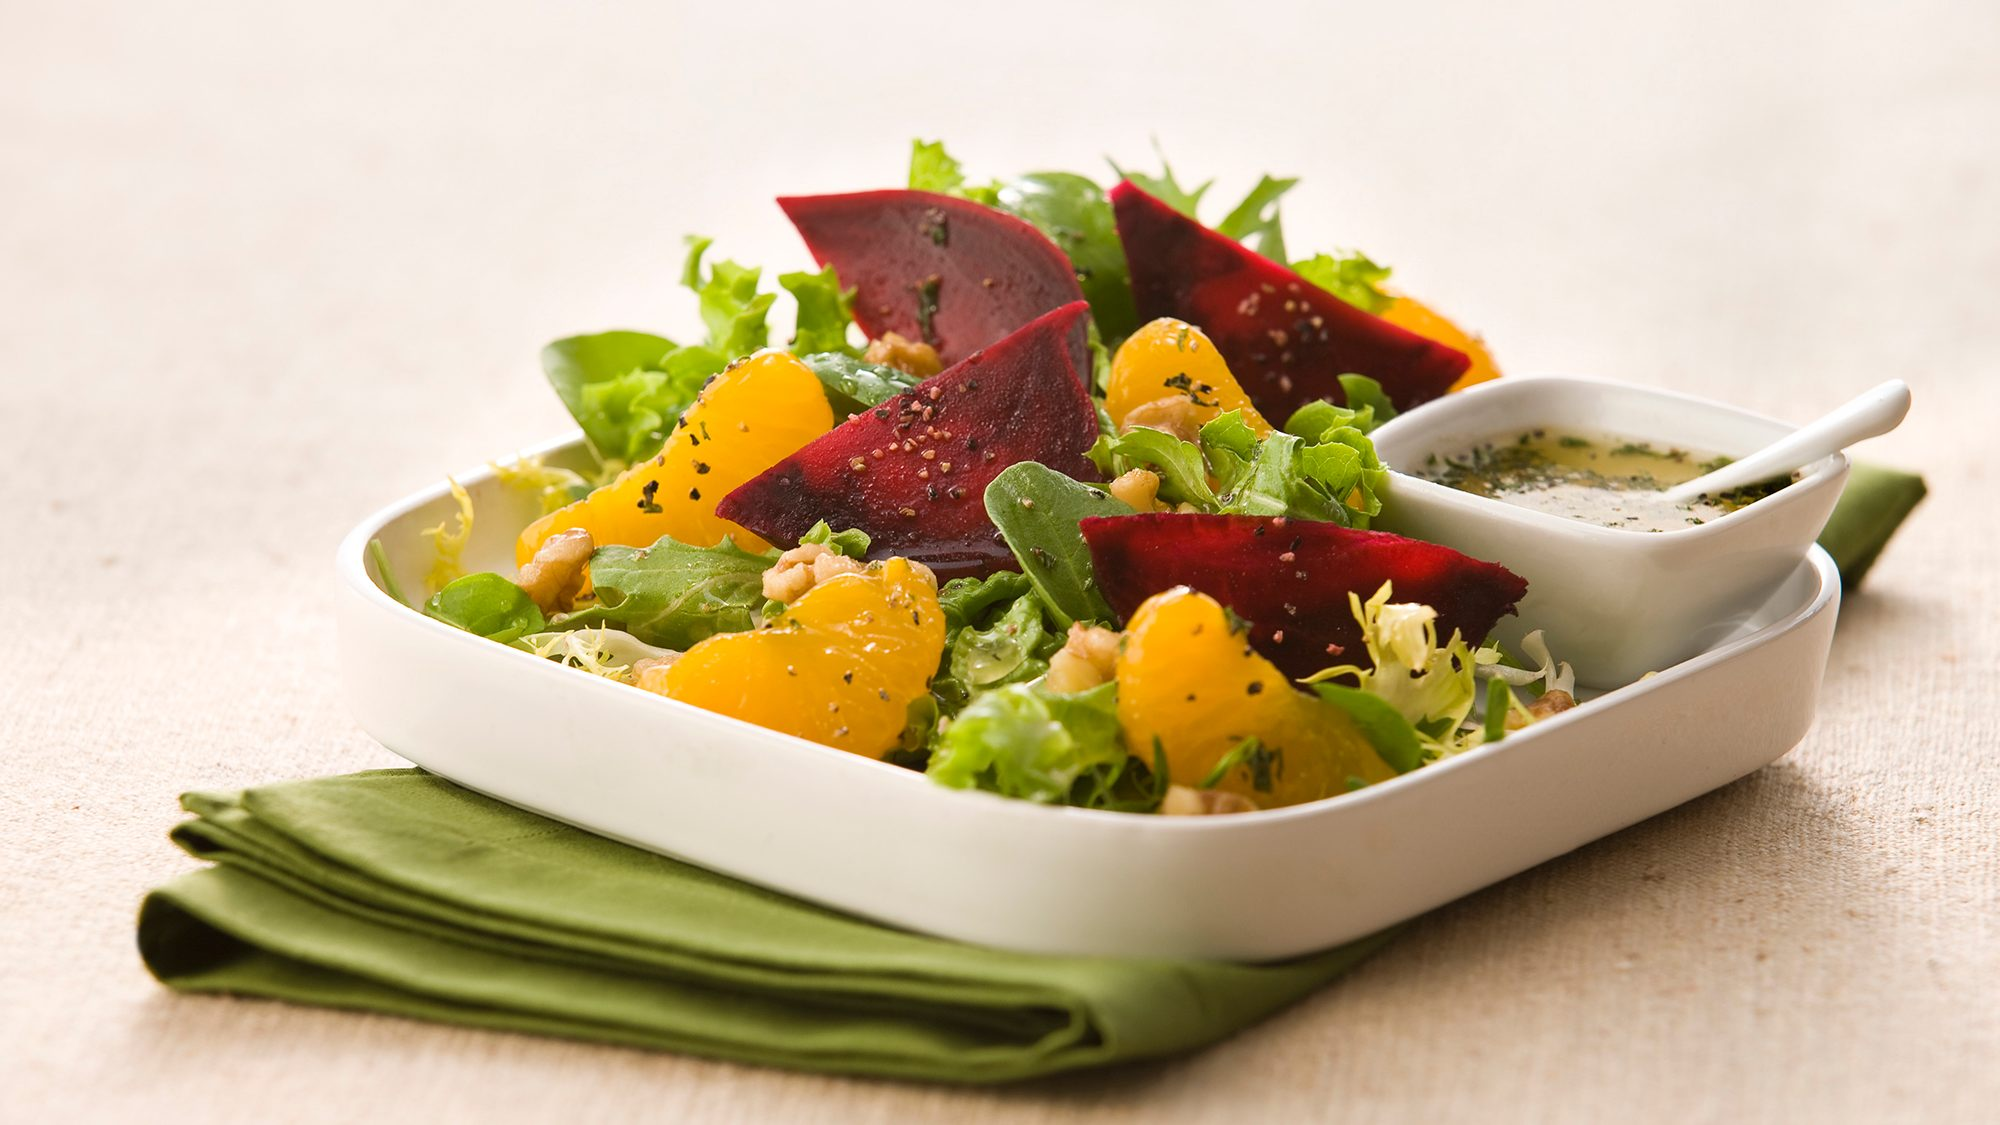 McCormick Gourmet Roasted Beet and Mandarin Orange Salad